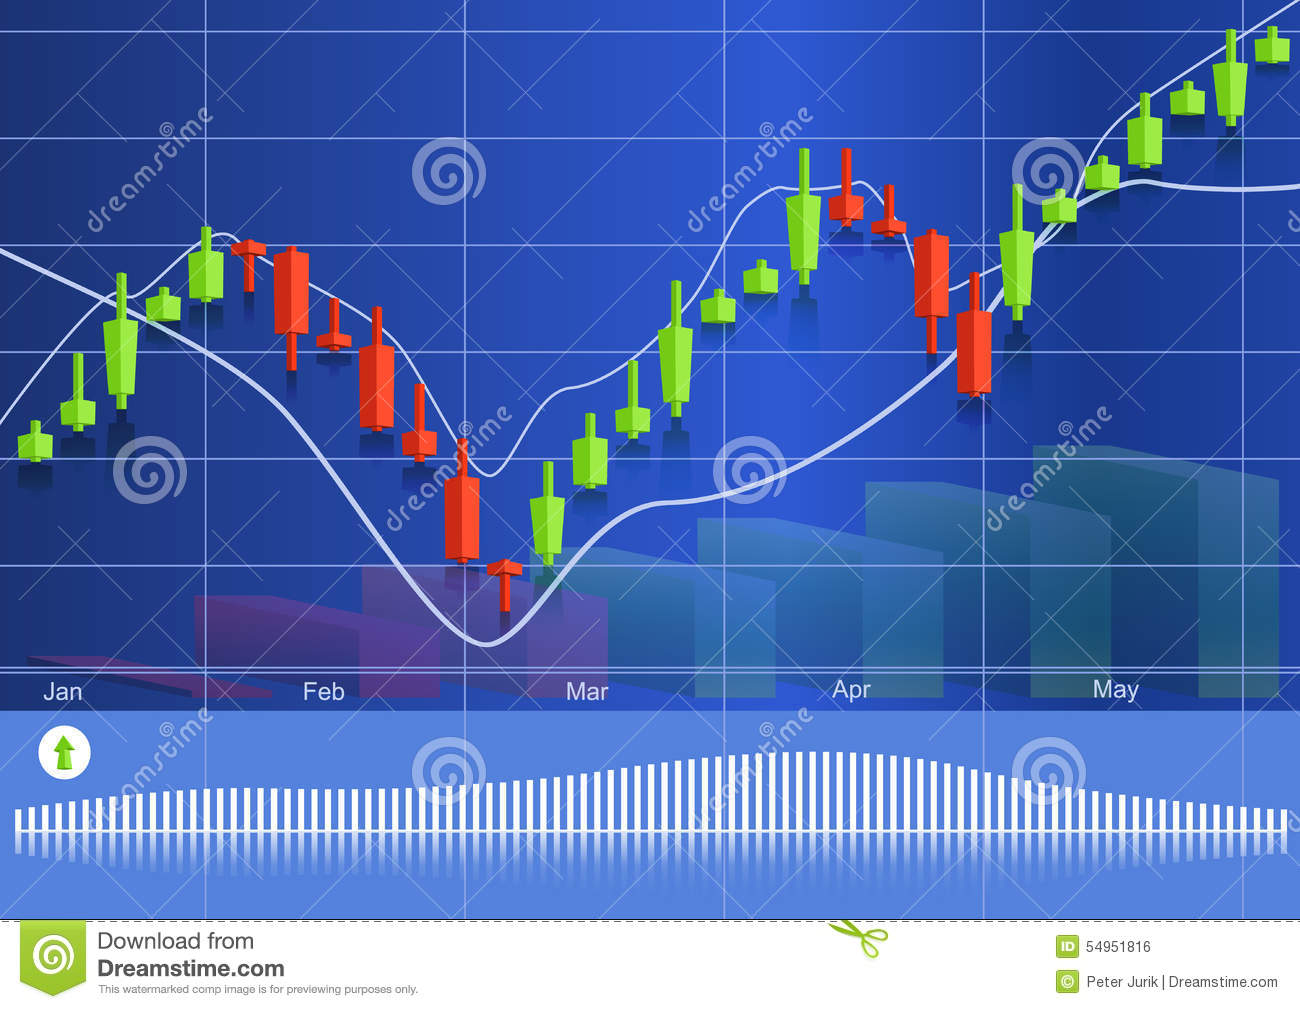 Futures forex trading